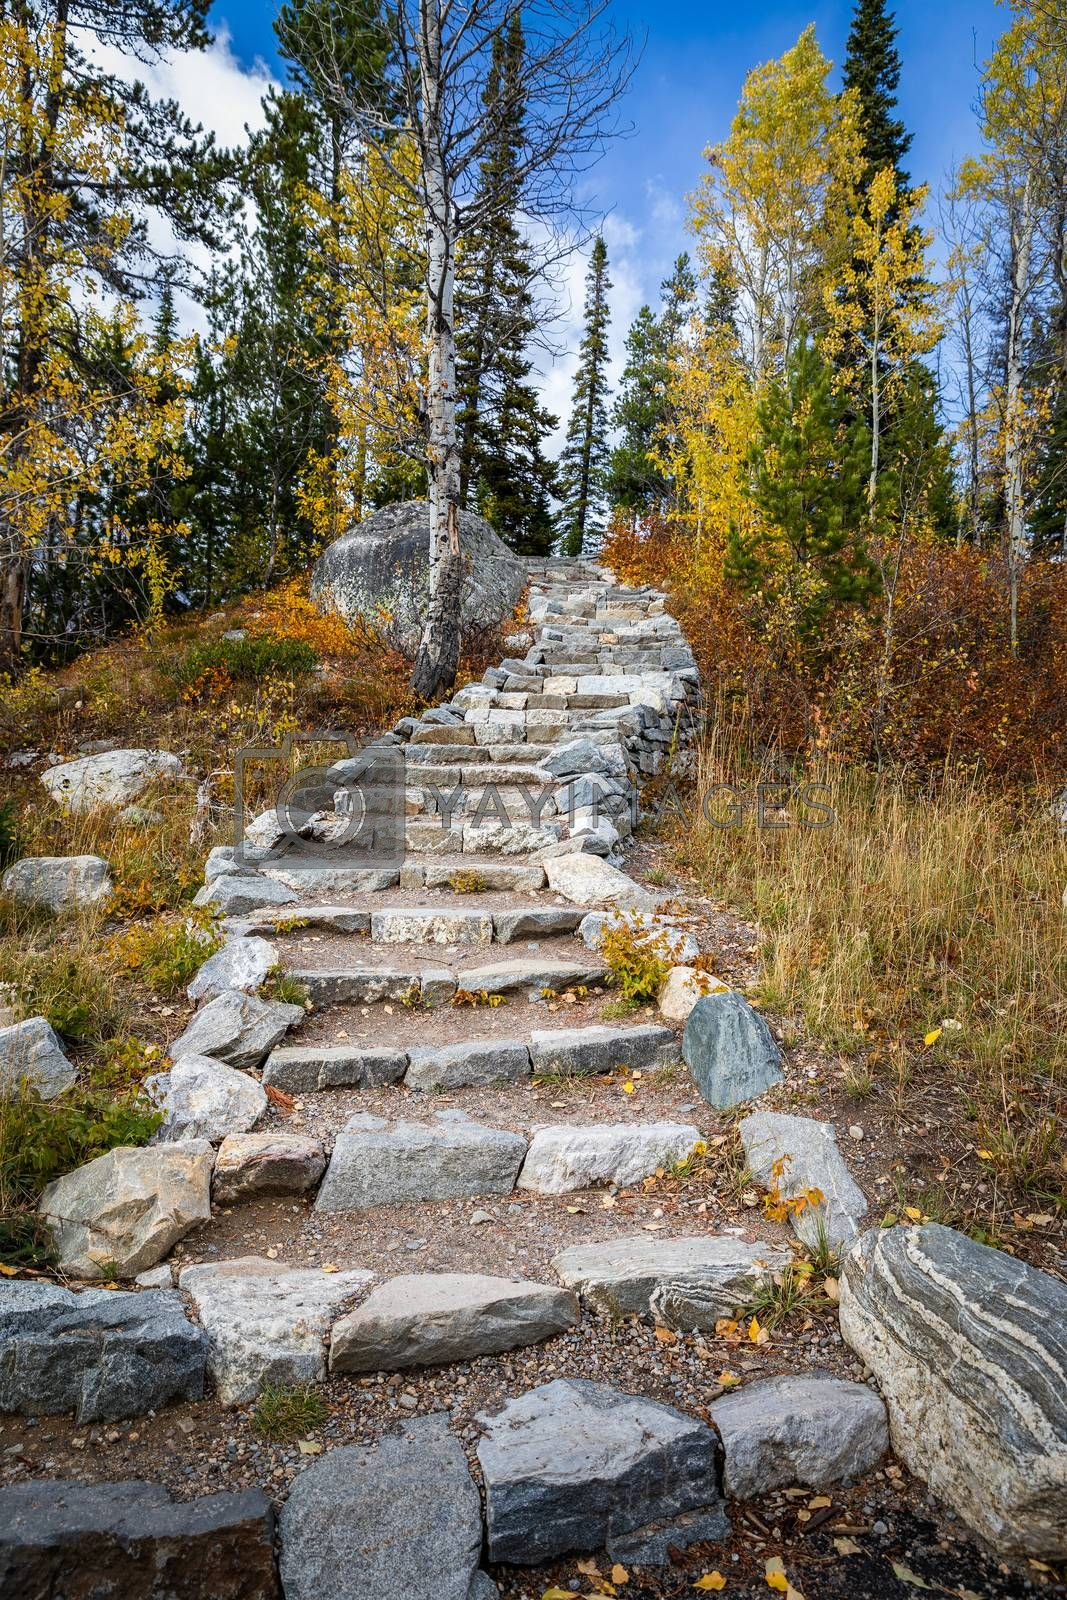 Outdoor stair made from stone inside color changing forest of Grand Teton National Park, Wyoming, USA.